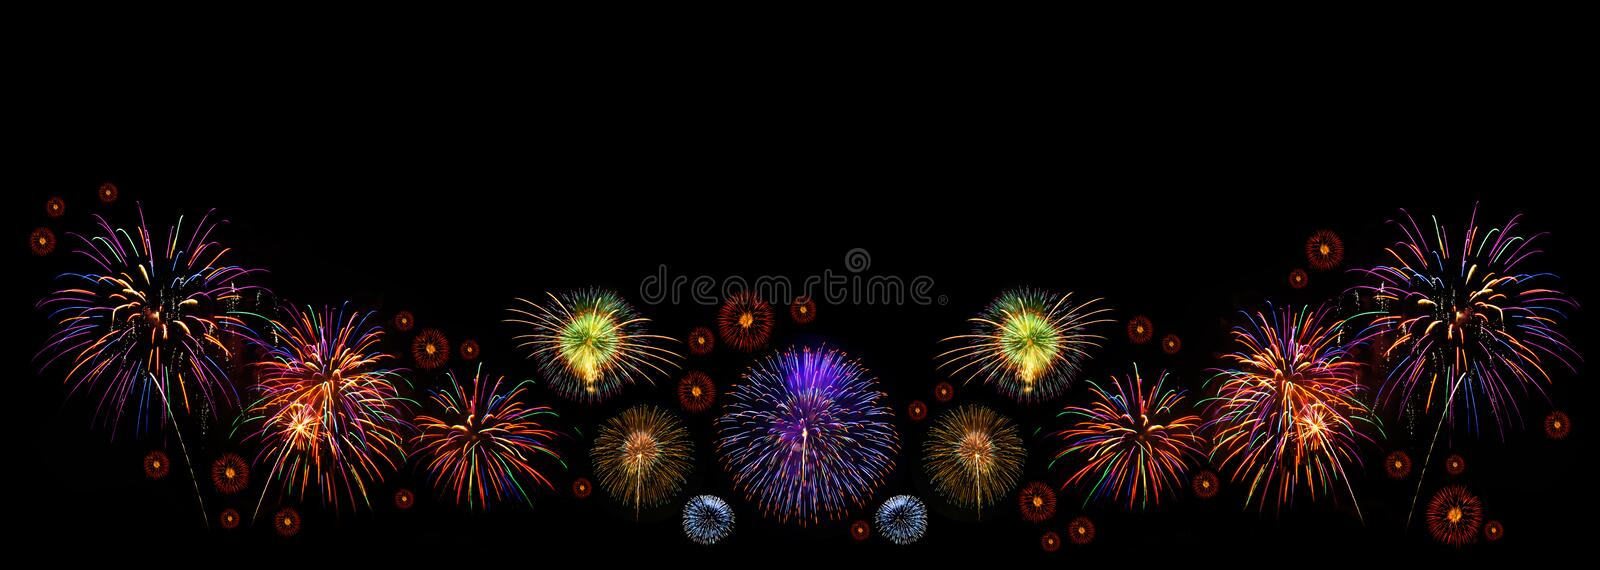 Fireworks with space for text royalty free stock photos